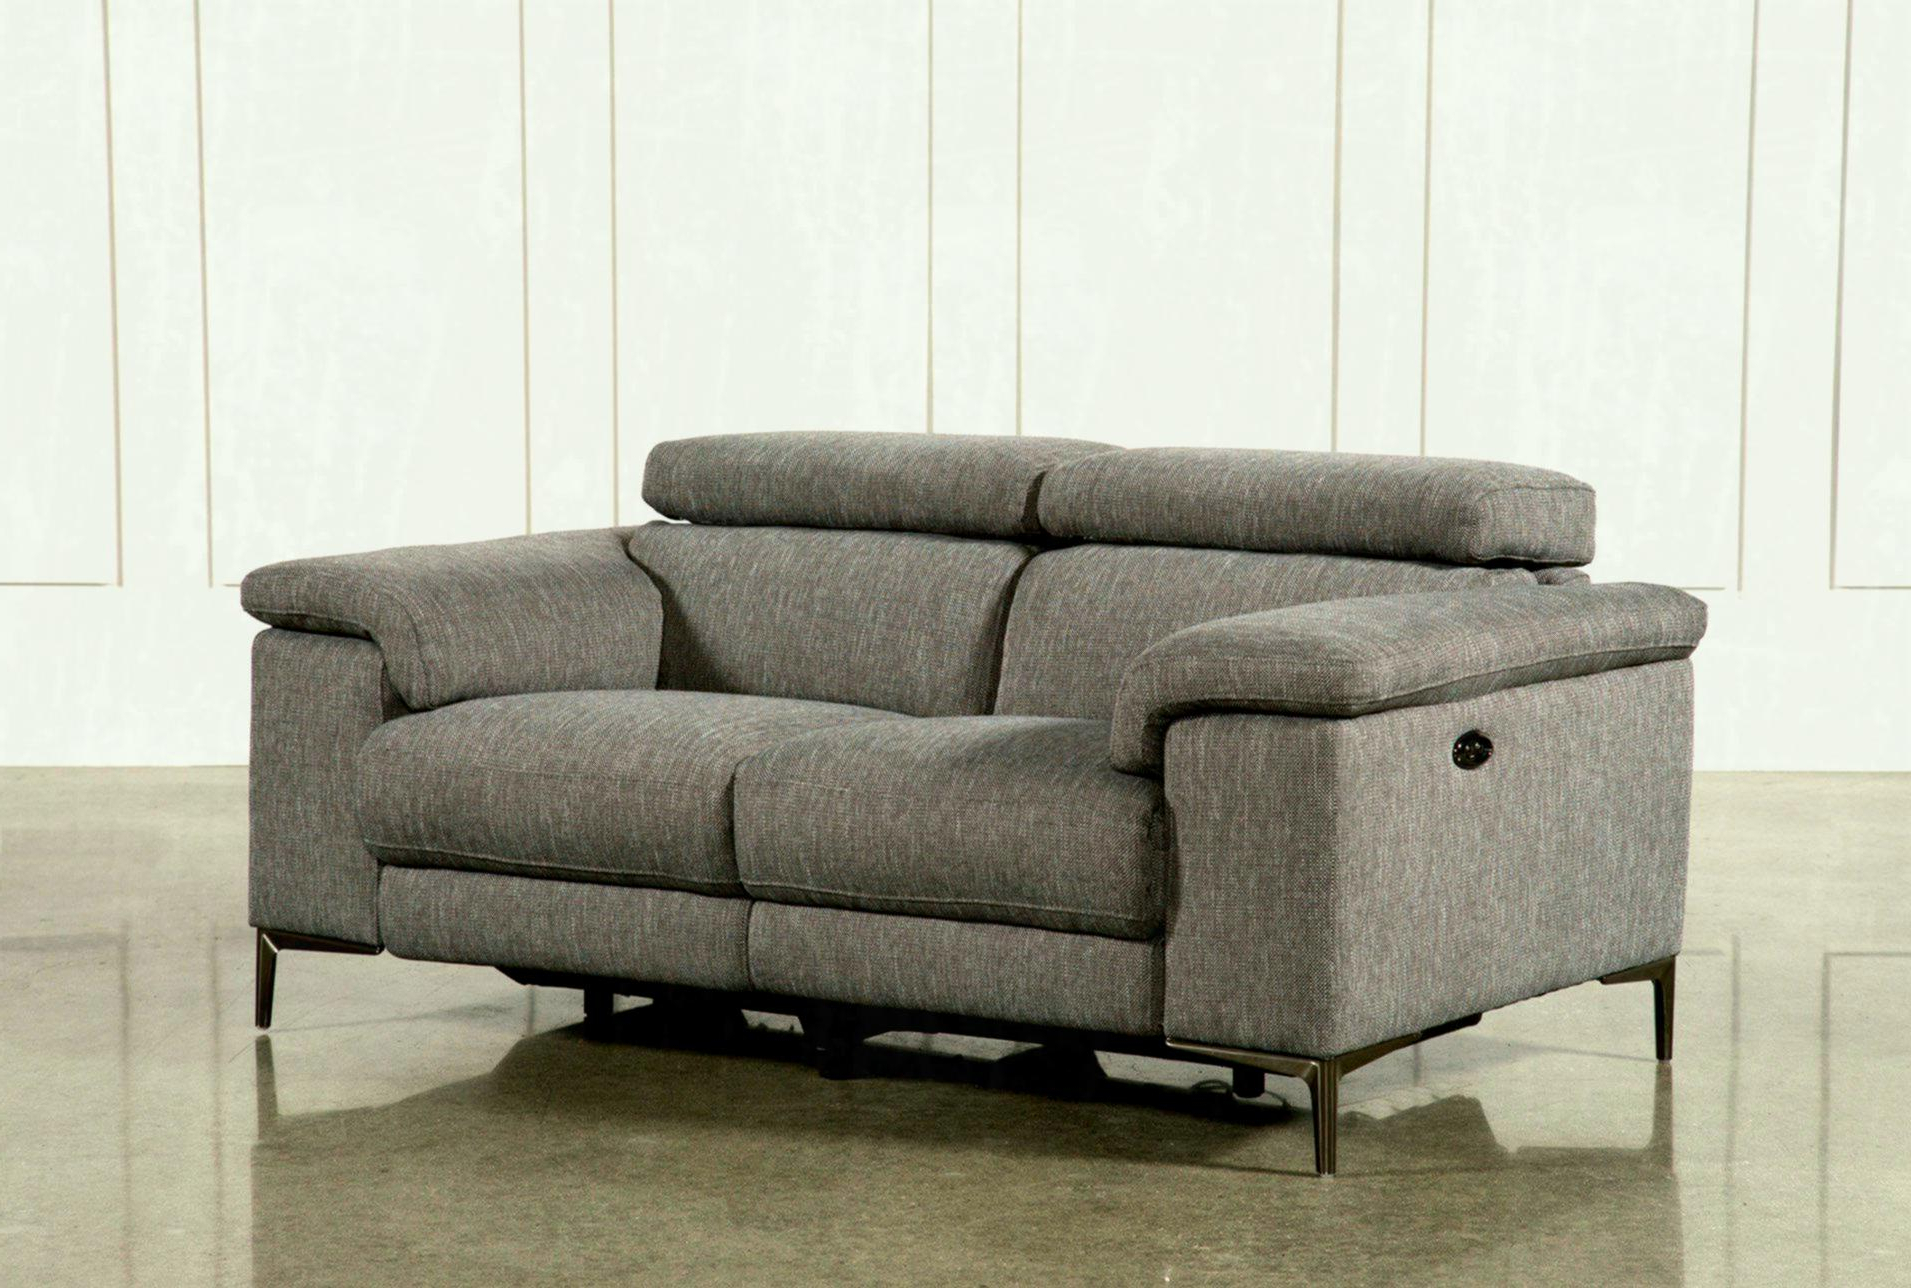 Well Known Aquarius Light Grey 2 Piece Sectionals With Raf Chaise Regarding Added To Cart Aquarius Light Grey Piece Sectional W Raf Chaise (View 19 of 20)